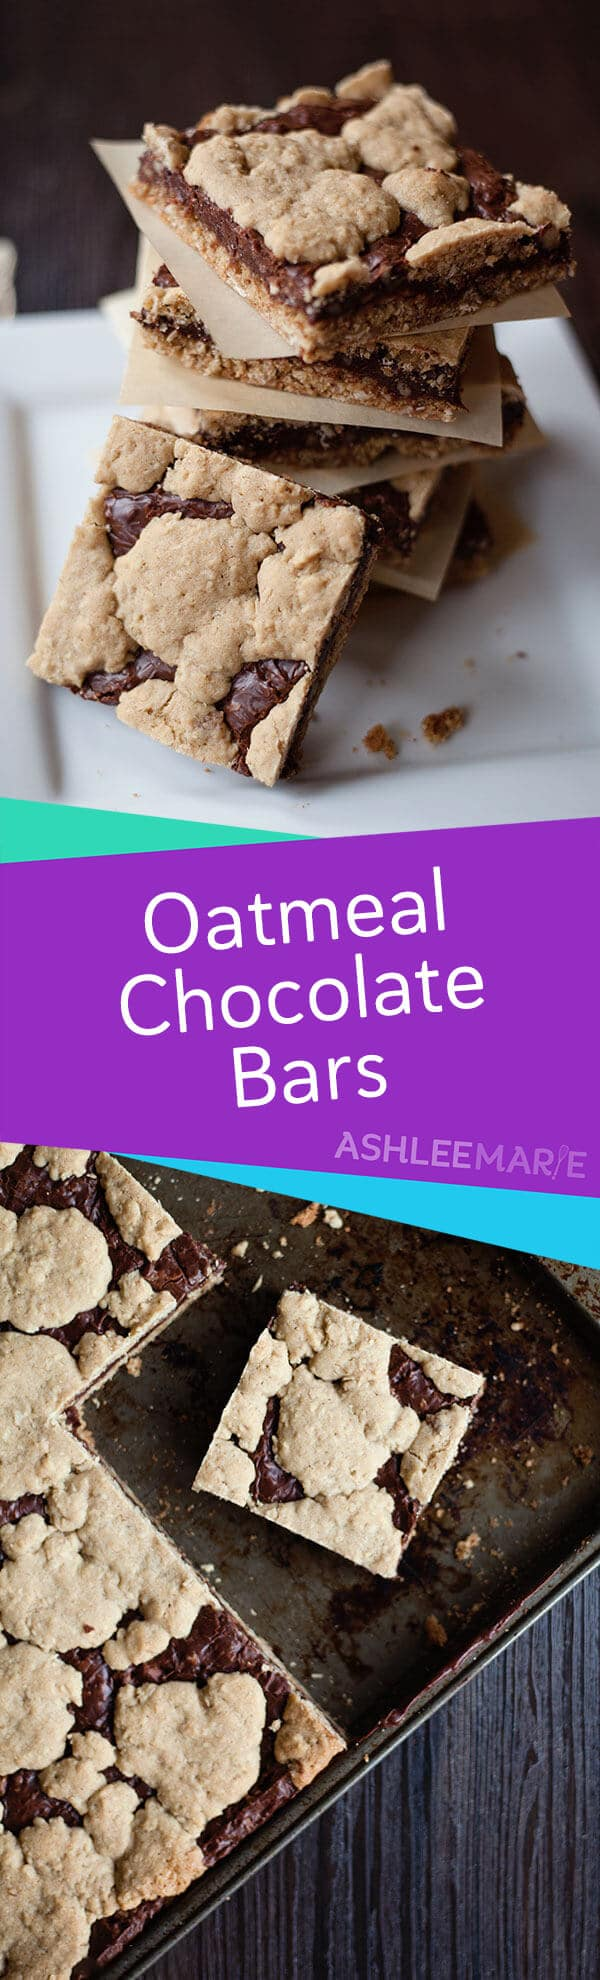 easy chocolate oatmeal bar recipe